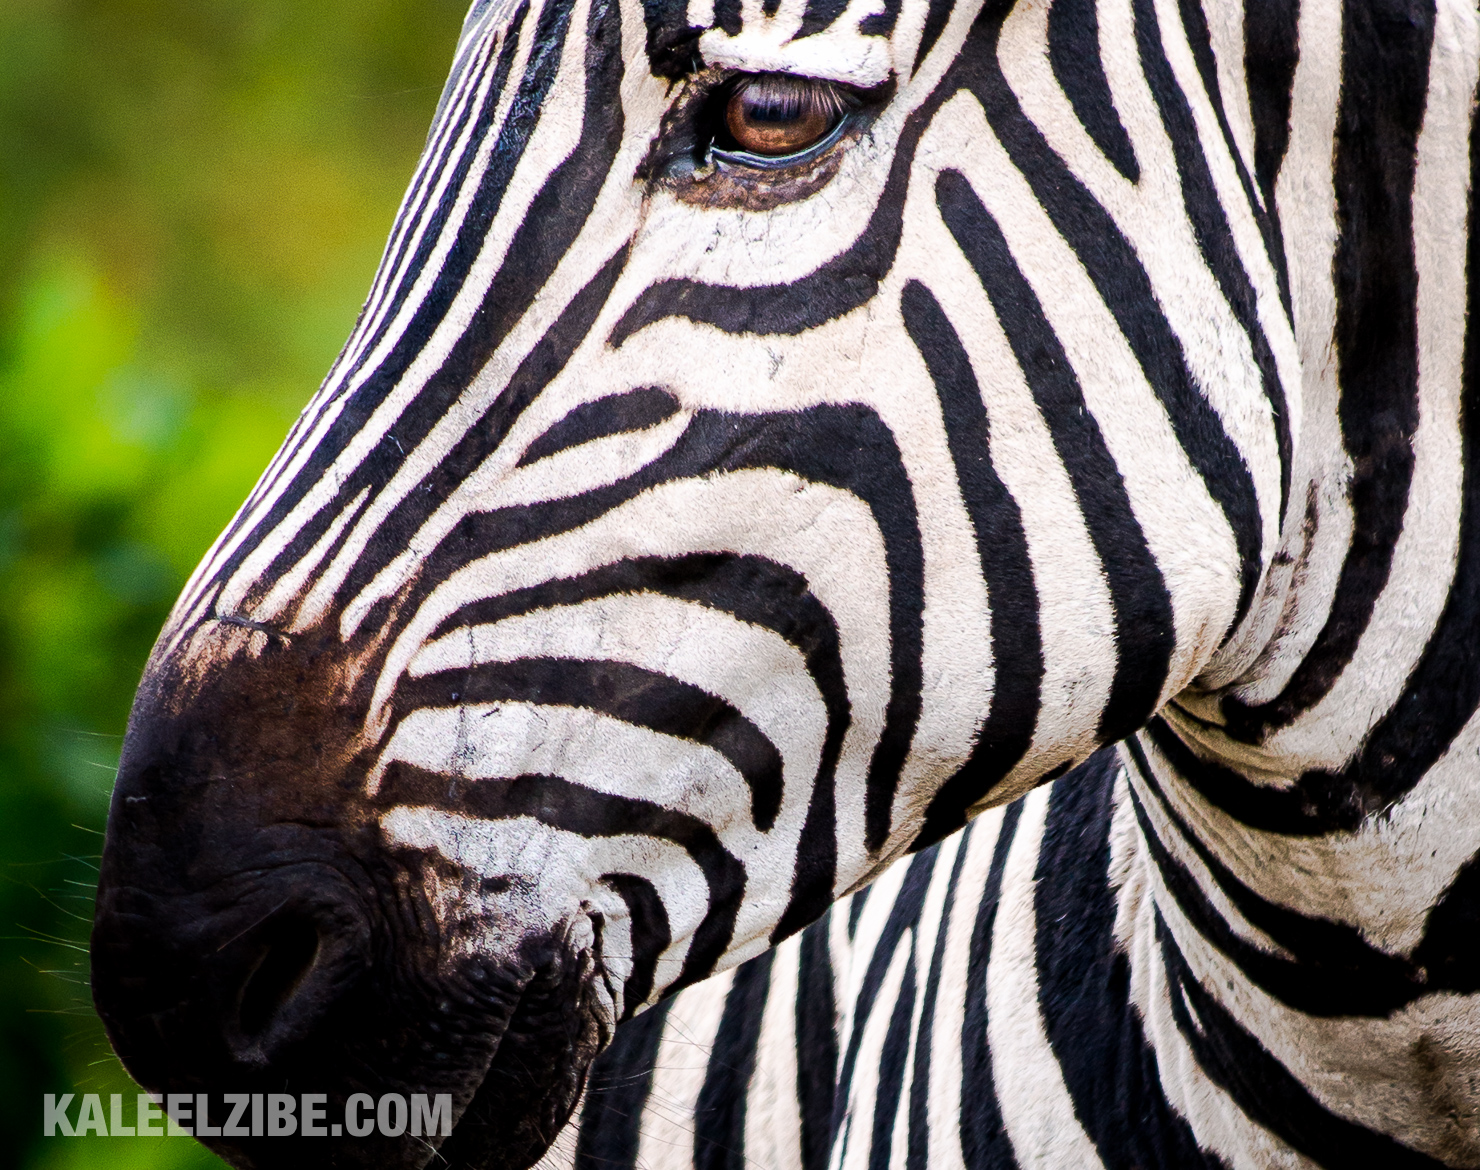 A zebra stallion. How do I know it's a stallion? Let's say there's a reason I cropped in on his face